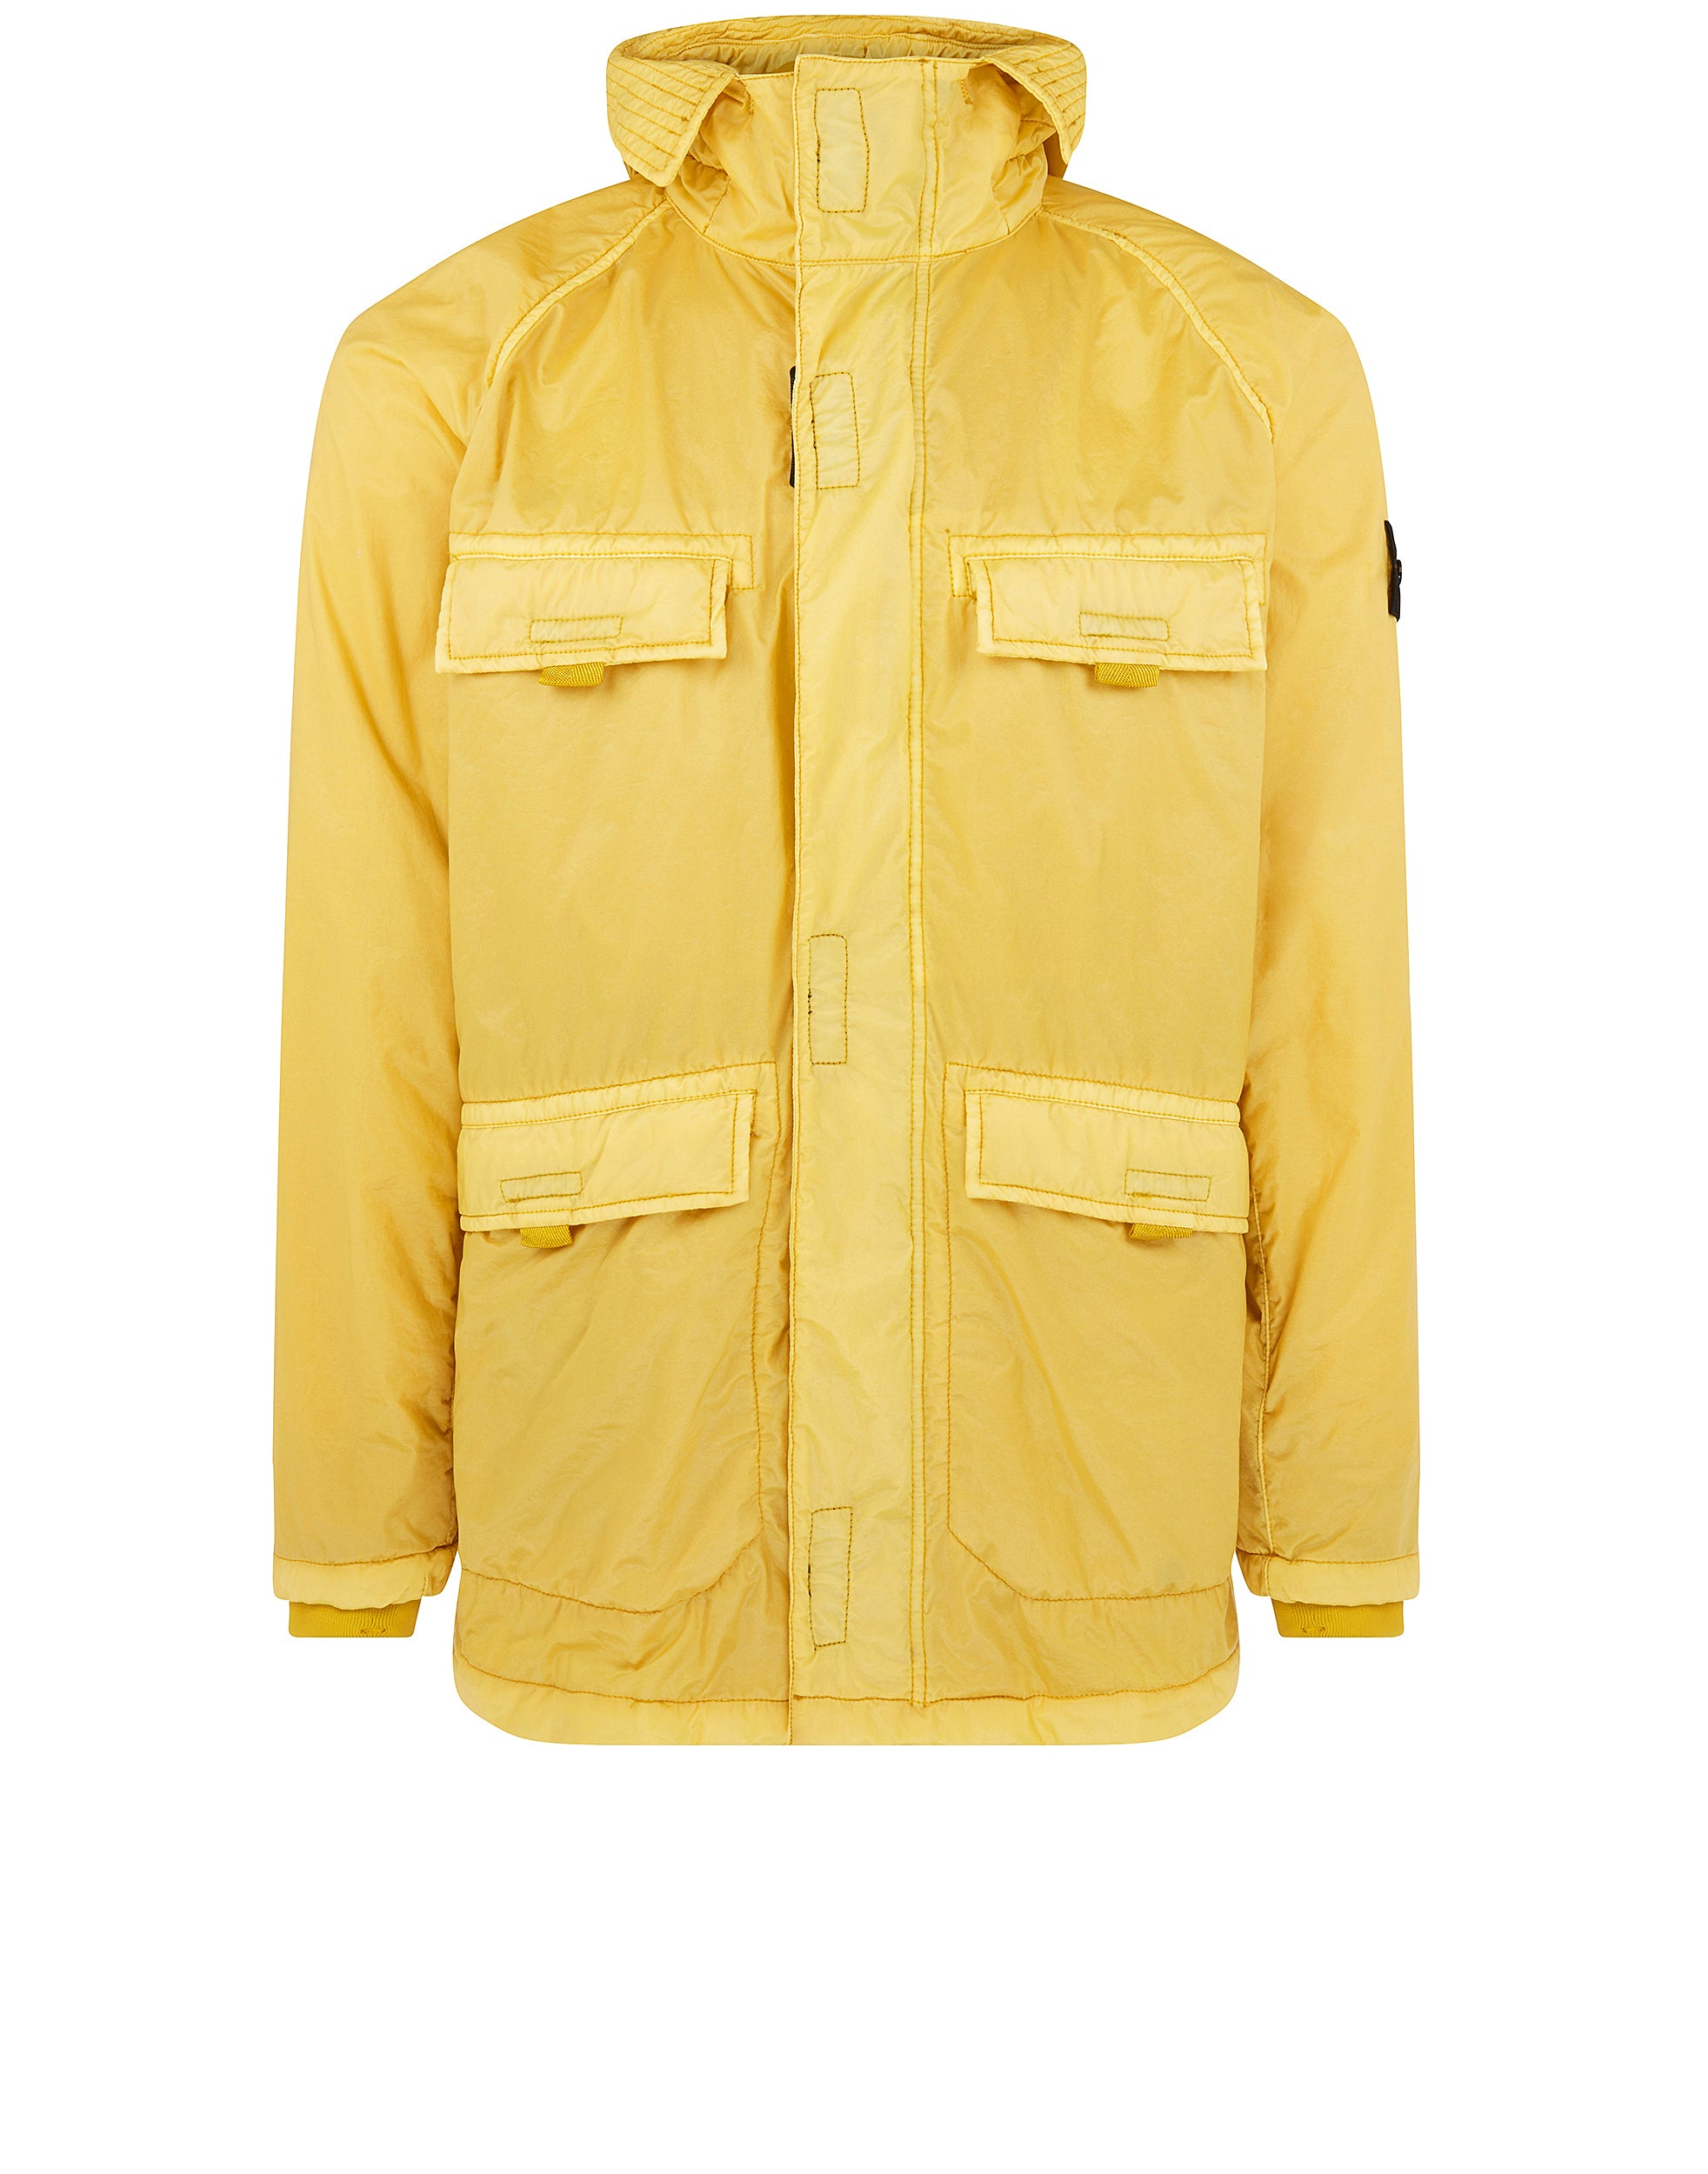 44735 Lamy Flock Jacket in Mustard